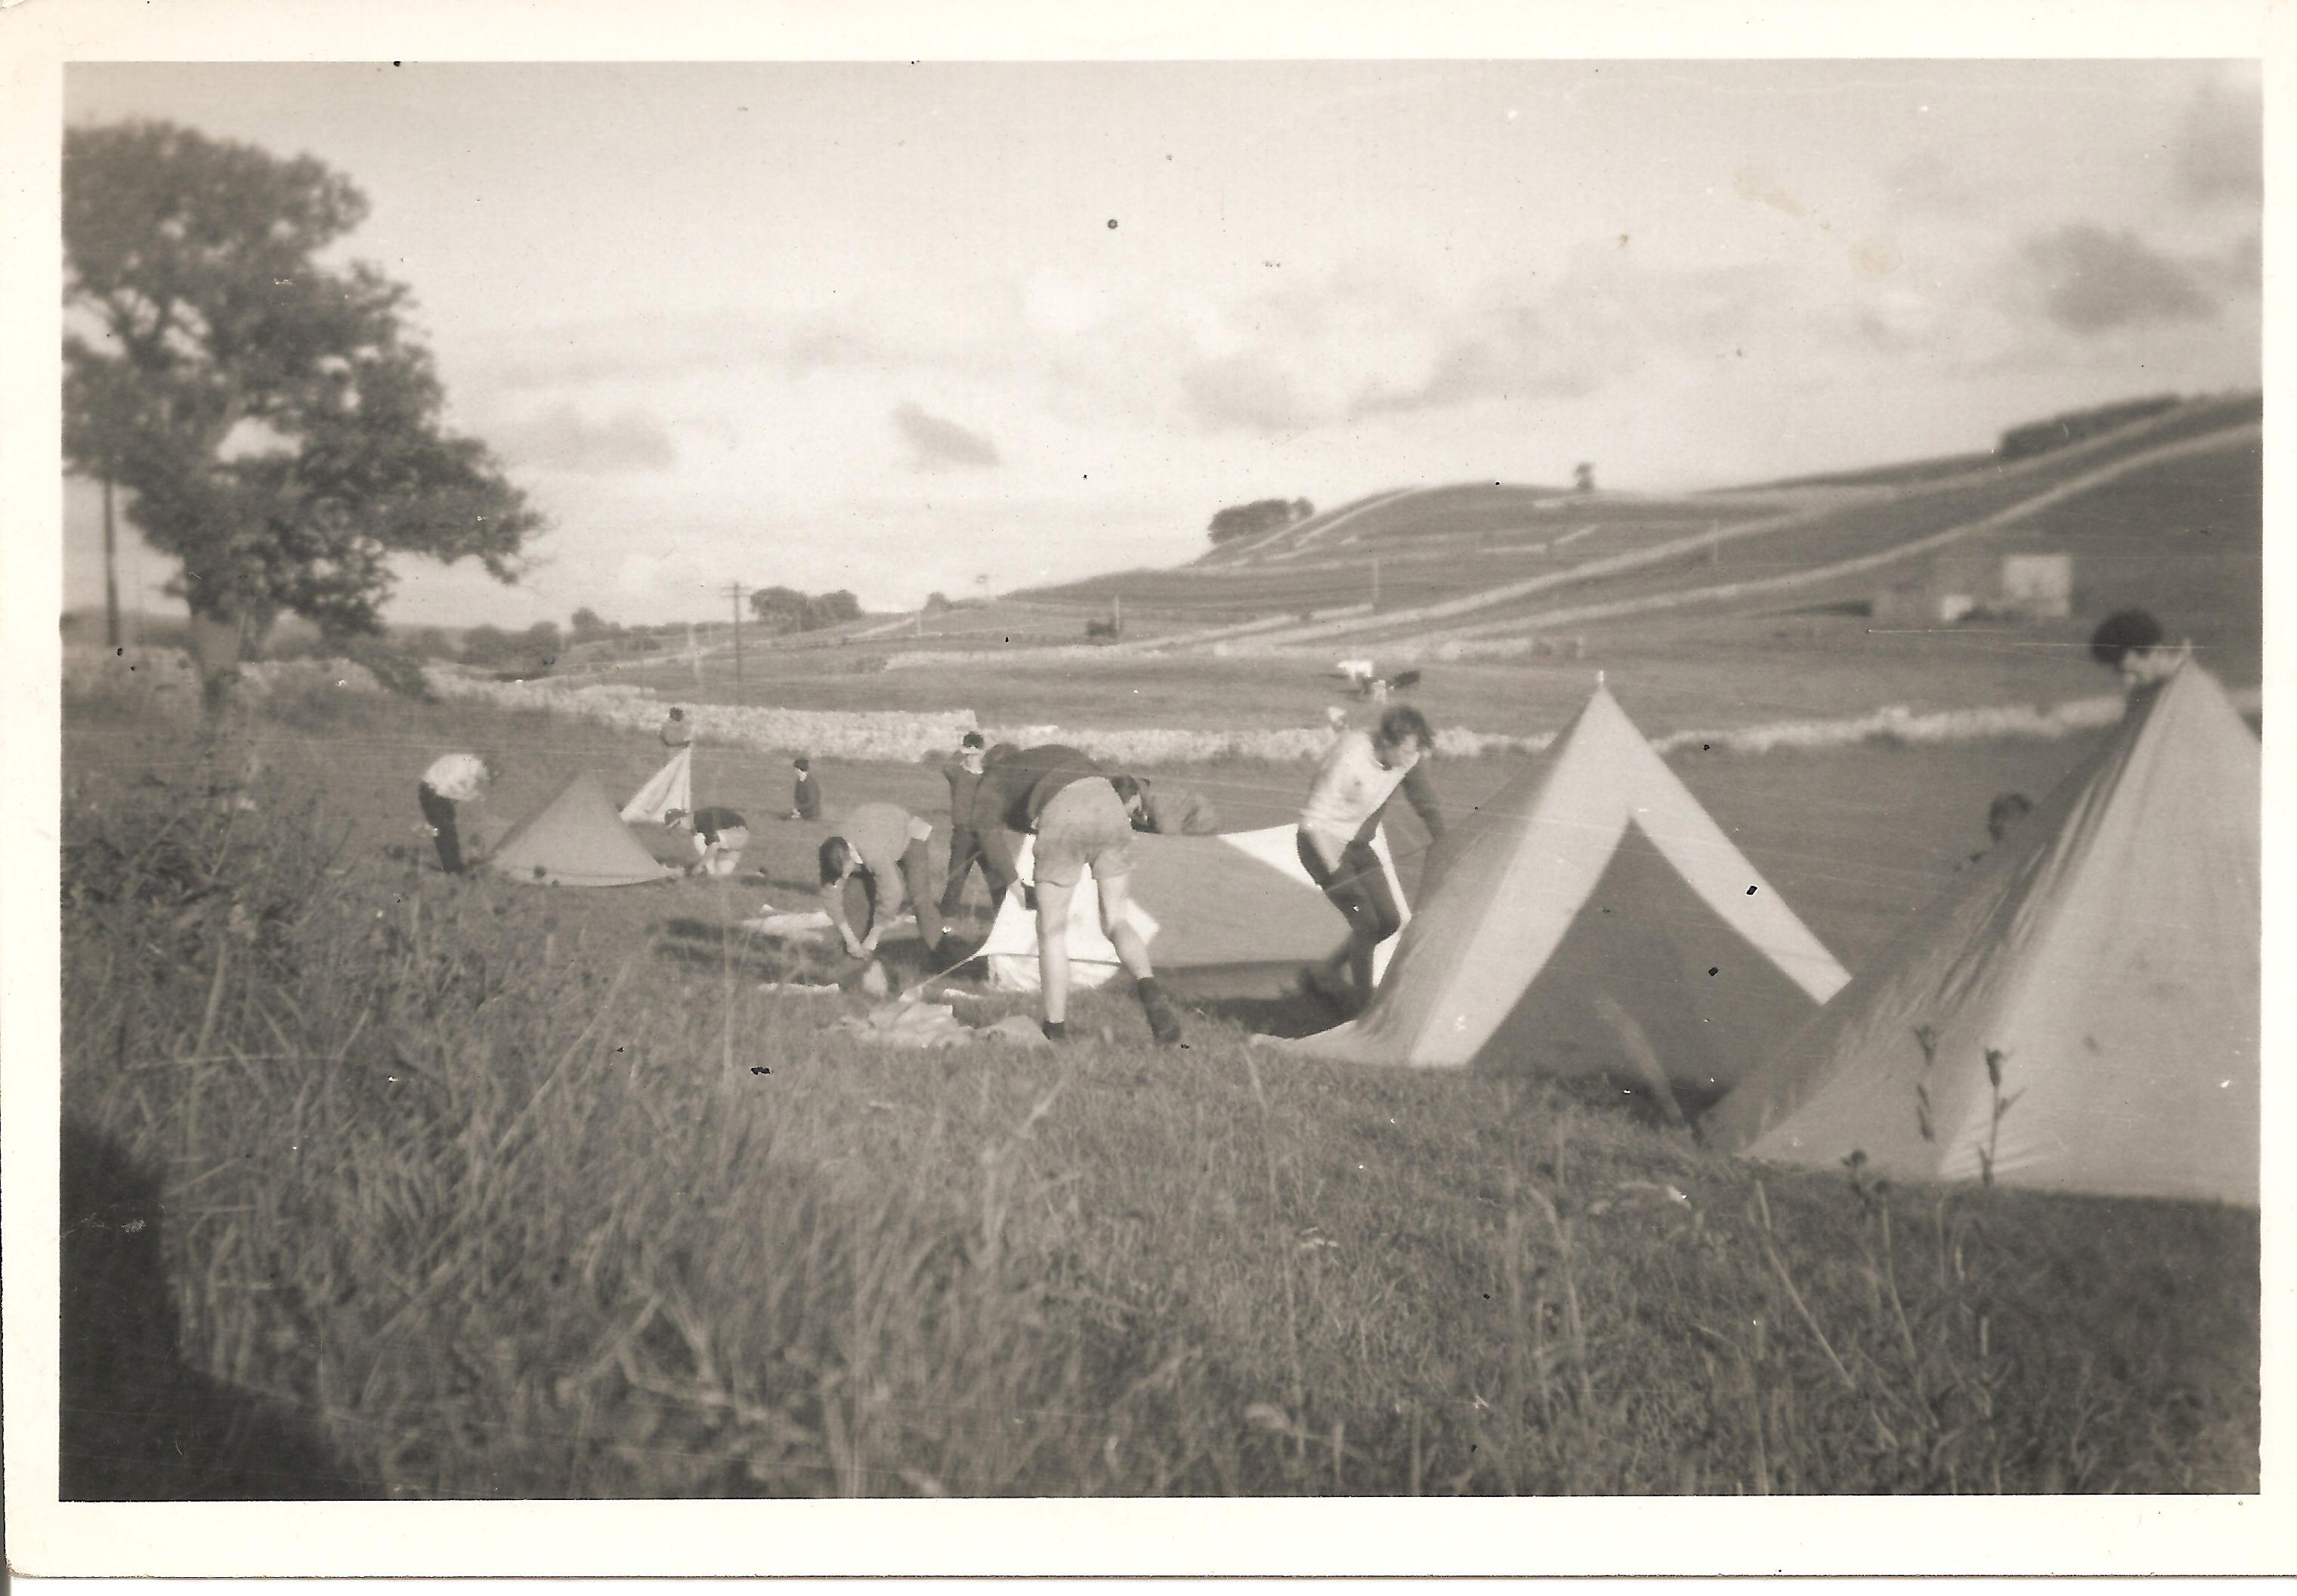 Tents in playing field